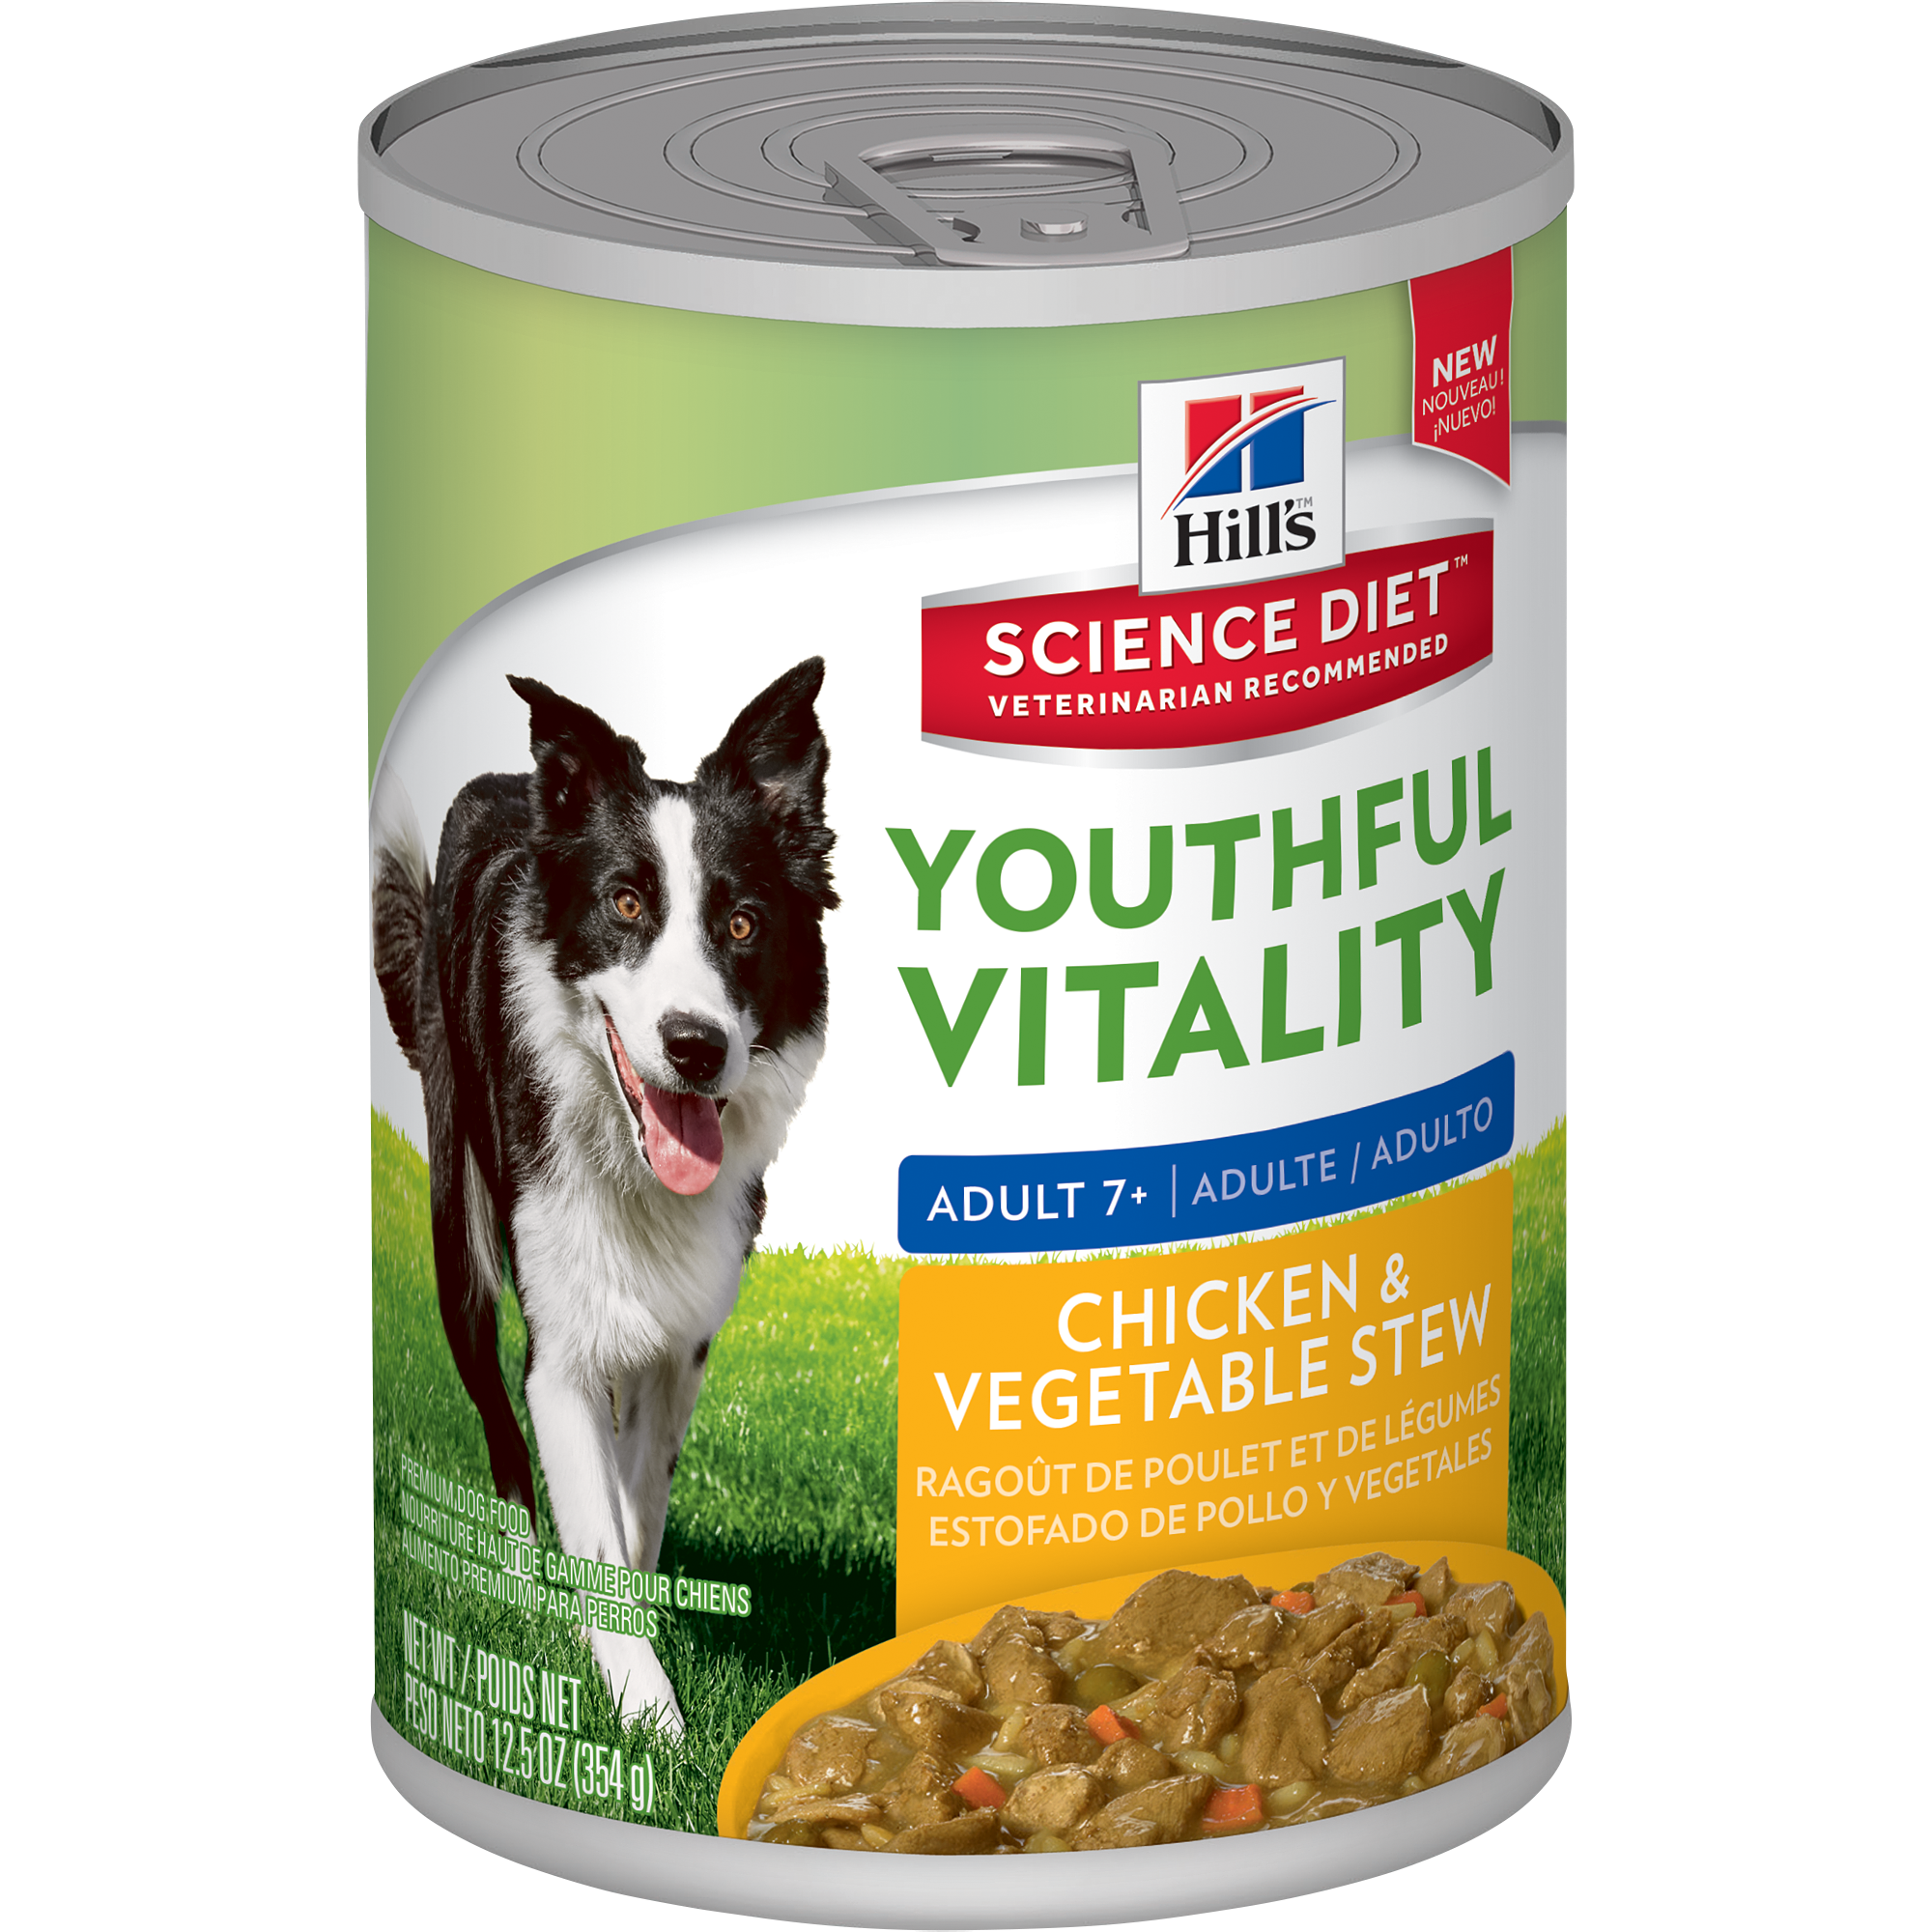 Hill's® Science Diet® Youthful Vitality - Chicken & Vegetables (354g) - Woofworths Premium Online Pet Supplies